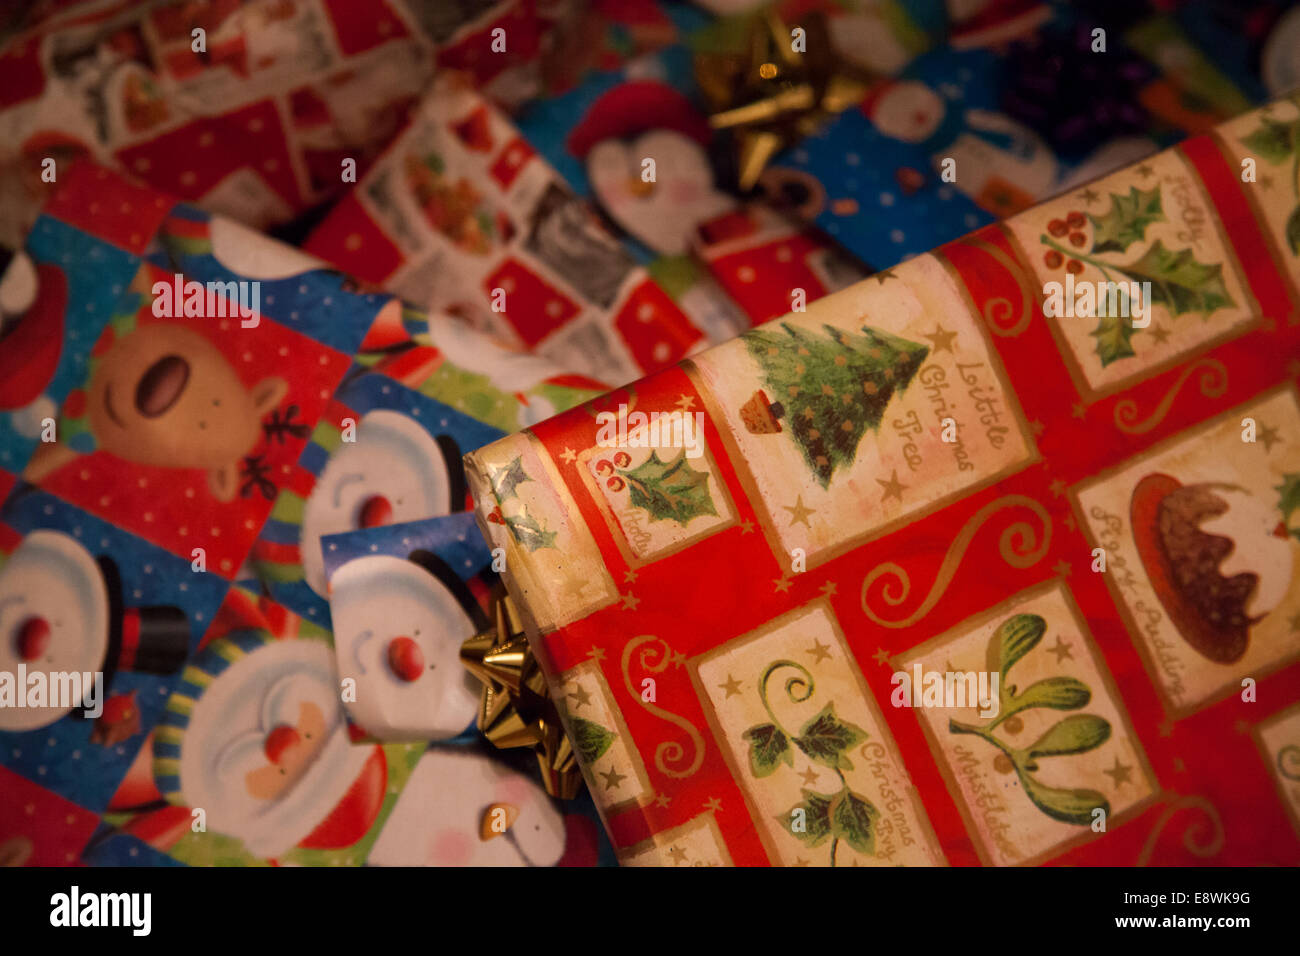 A Farm Wife's Life: Christmas Presents |Wrapped Christmas Presents Under The Tree